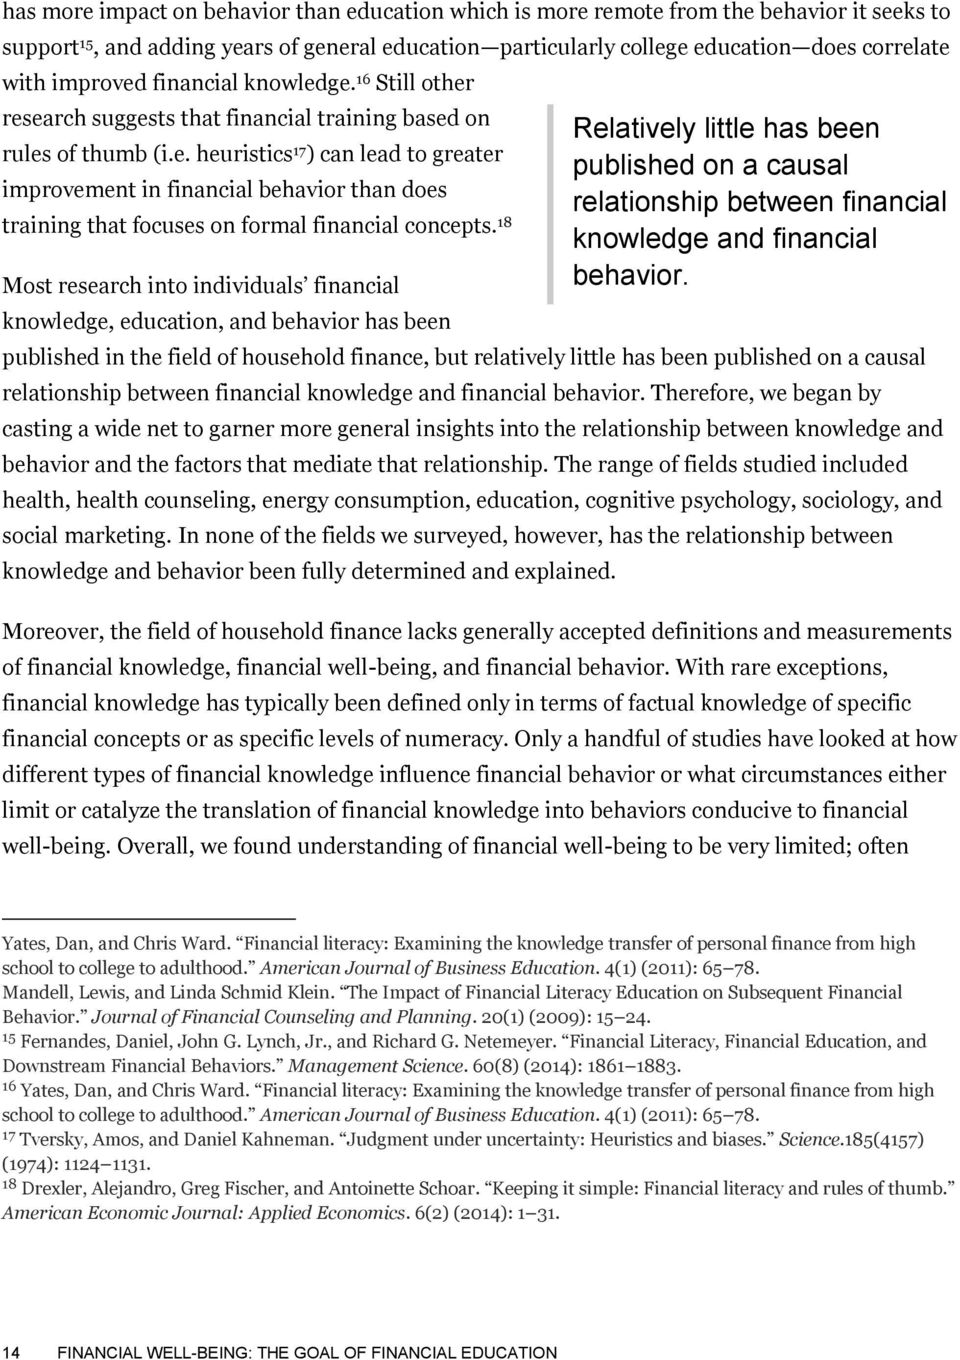 18 Most research into individuals financial knowledge, education, and behavior has been published in the field of household finance, but relatively little has been published on a causal relationship